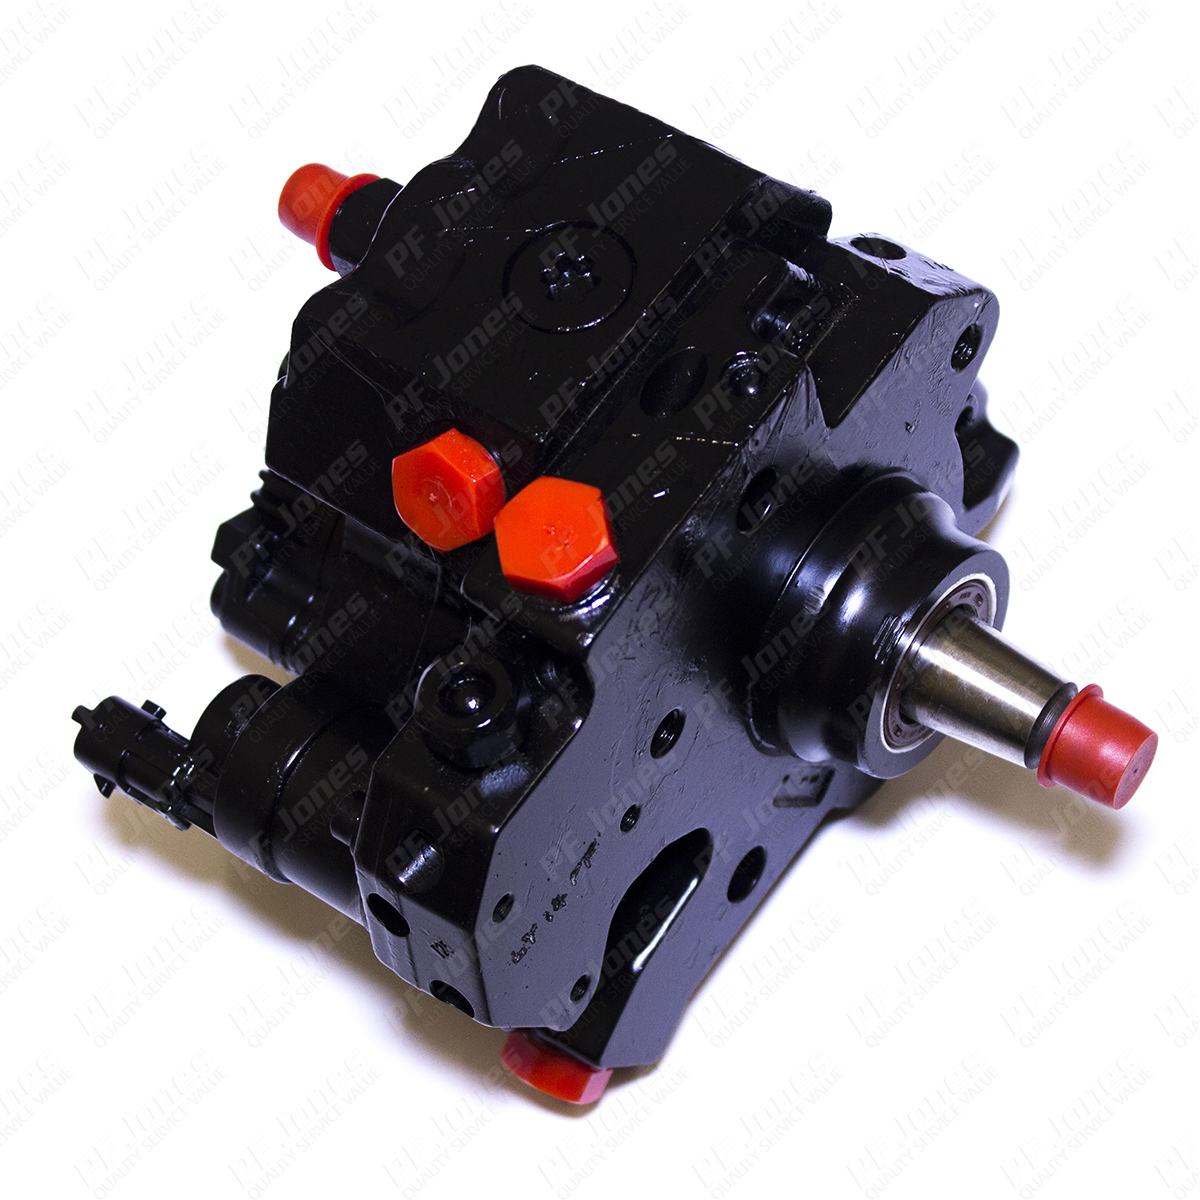 Iveco Daily 2.3 2002-2006 Reconditioned Bosch Common Rail Pump 0445020008